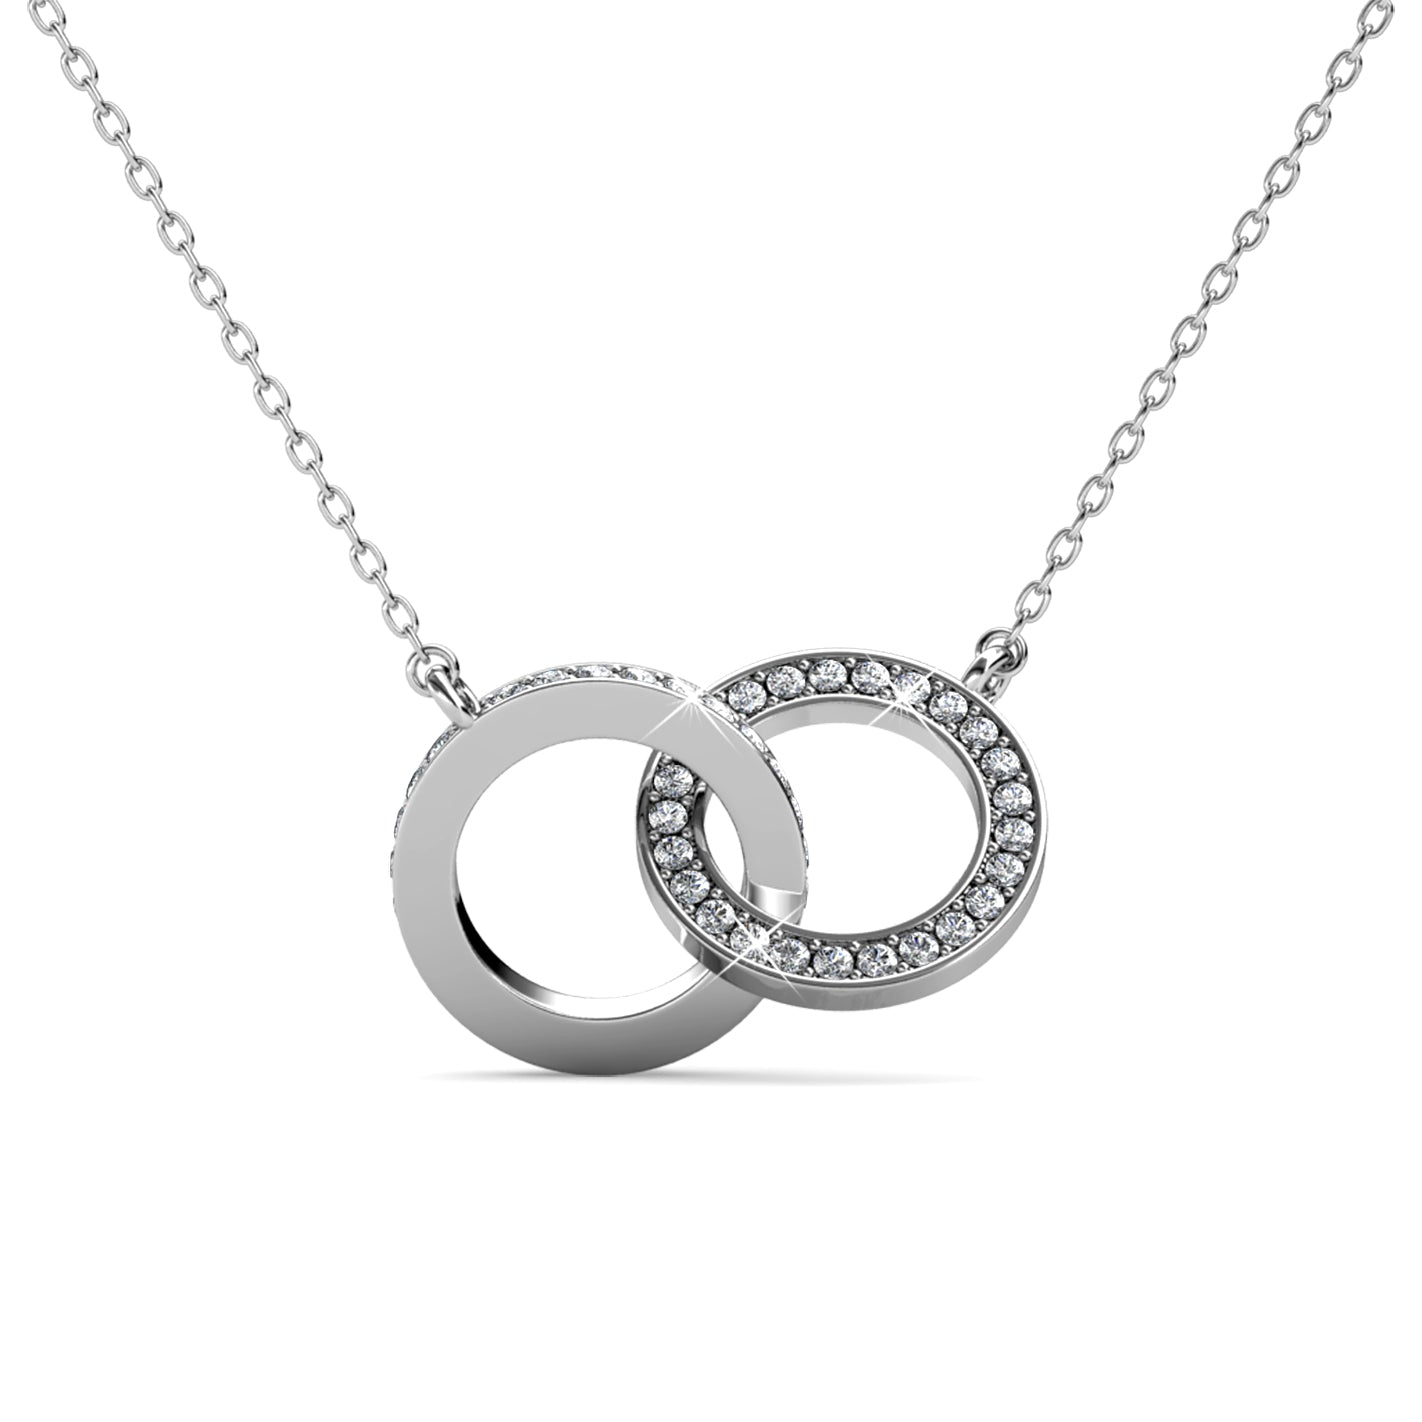 Destiny Mila Necklace with Swarovski Crystals - White